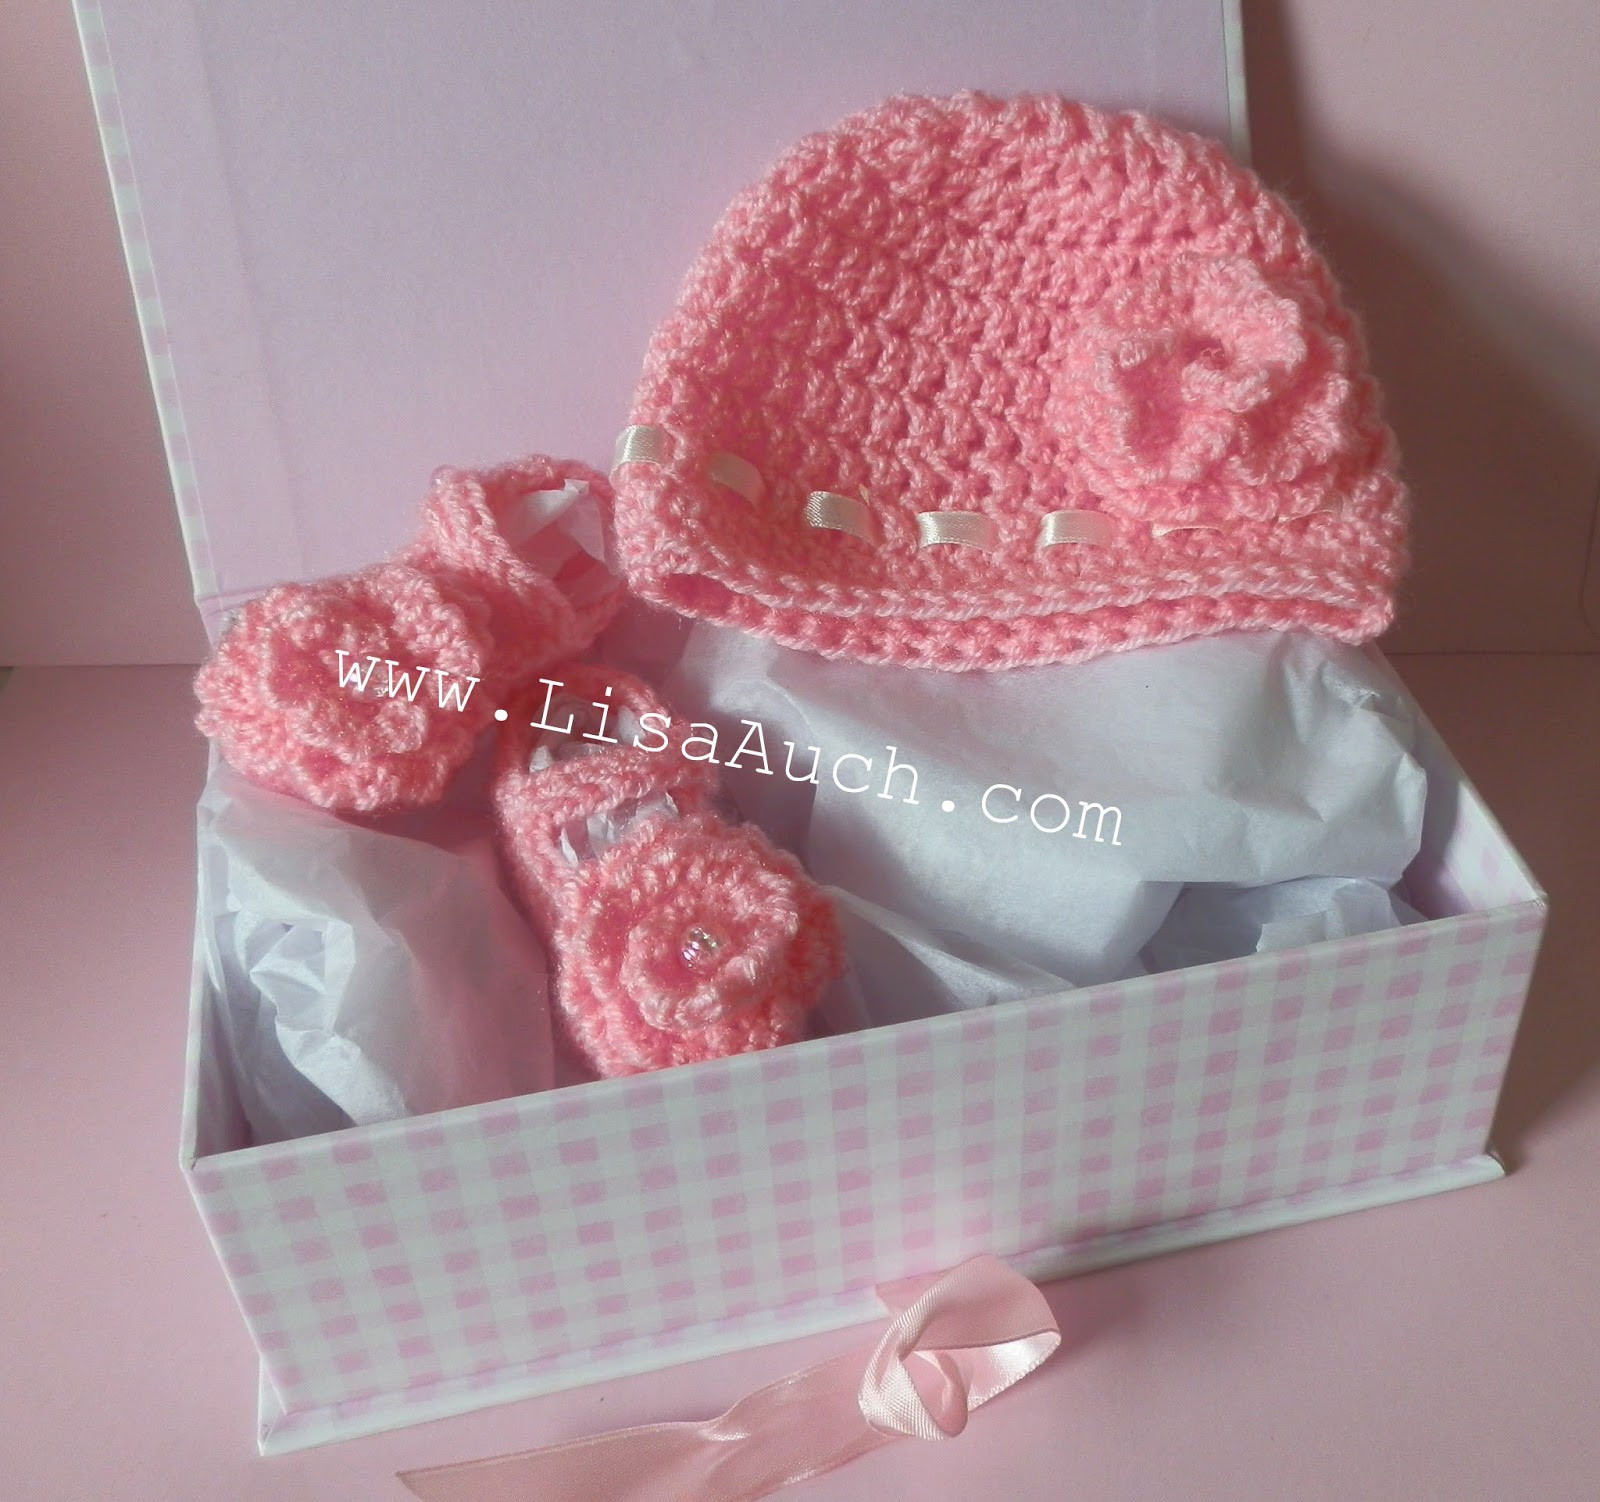 Luxury Free Crochet Patterns and Designs by Lisaauch May 2012 Free Crochet Infant Hat Patterns Of Luxury Baby Hat Crochet Pattern Modern Homemakers Free Crochet Infant Hat Patterns